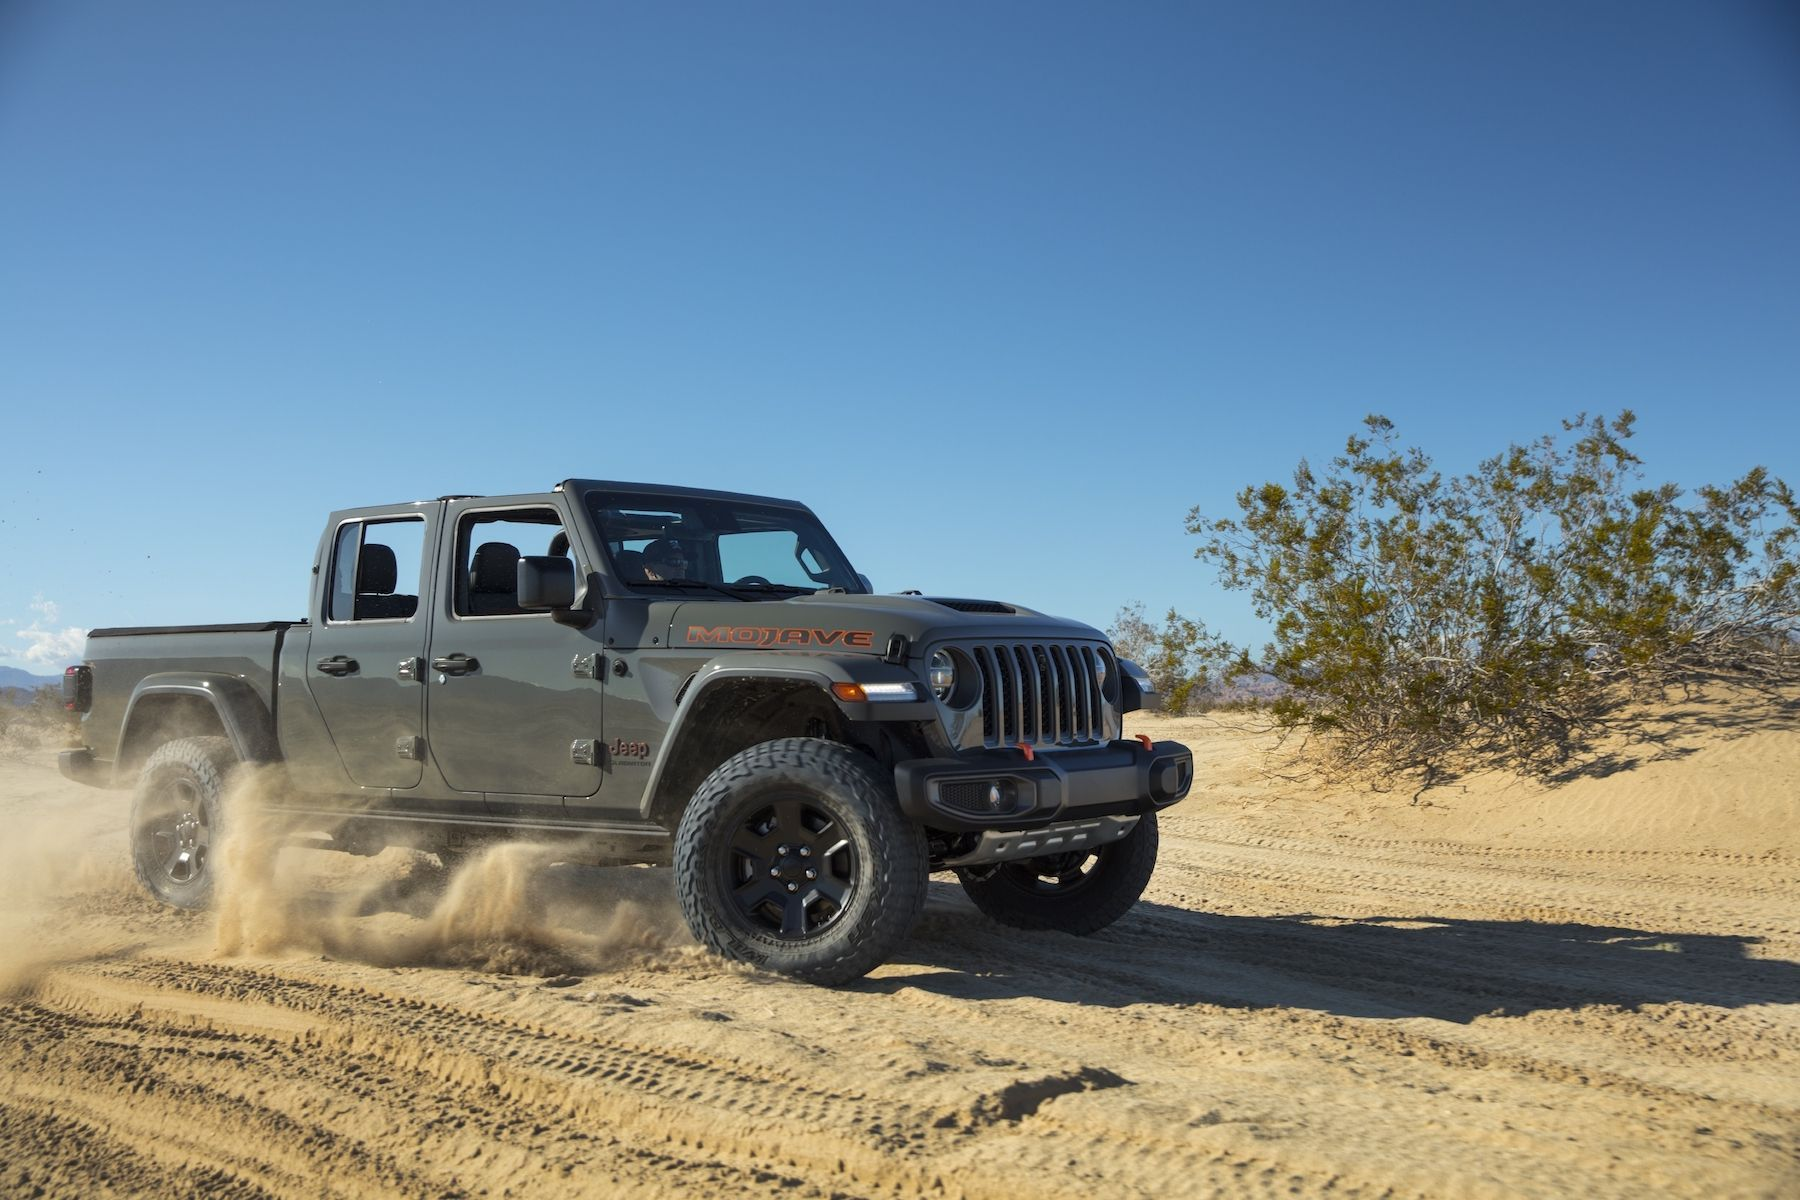 Jeep's 2020 Gladiator Mojave is 'Desert Rated,' not 'Trail